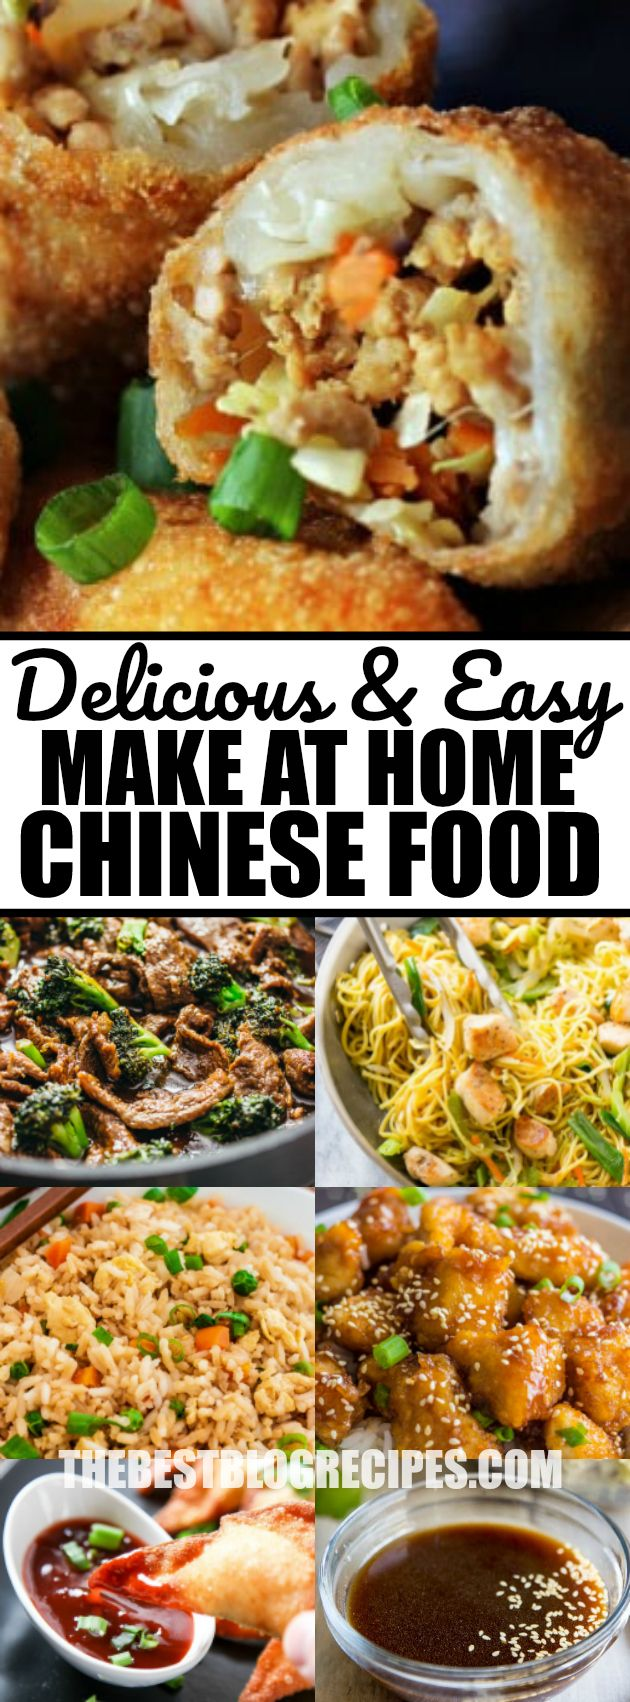 Delicious easy make at home chinese food recipe pinterest cocinas delicious easy make at home chinese food forumfinder Choice Image